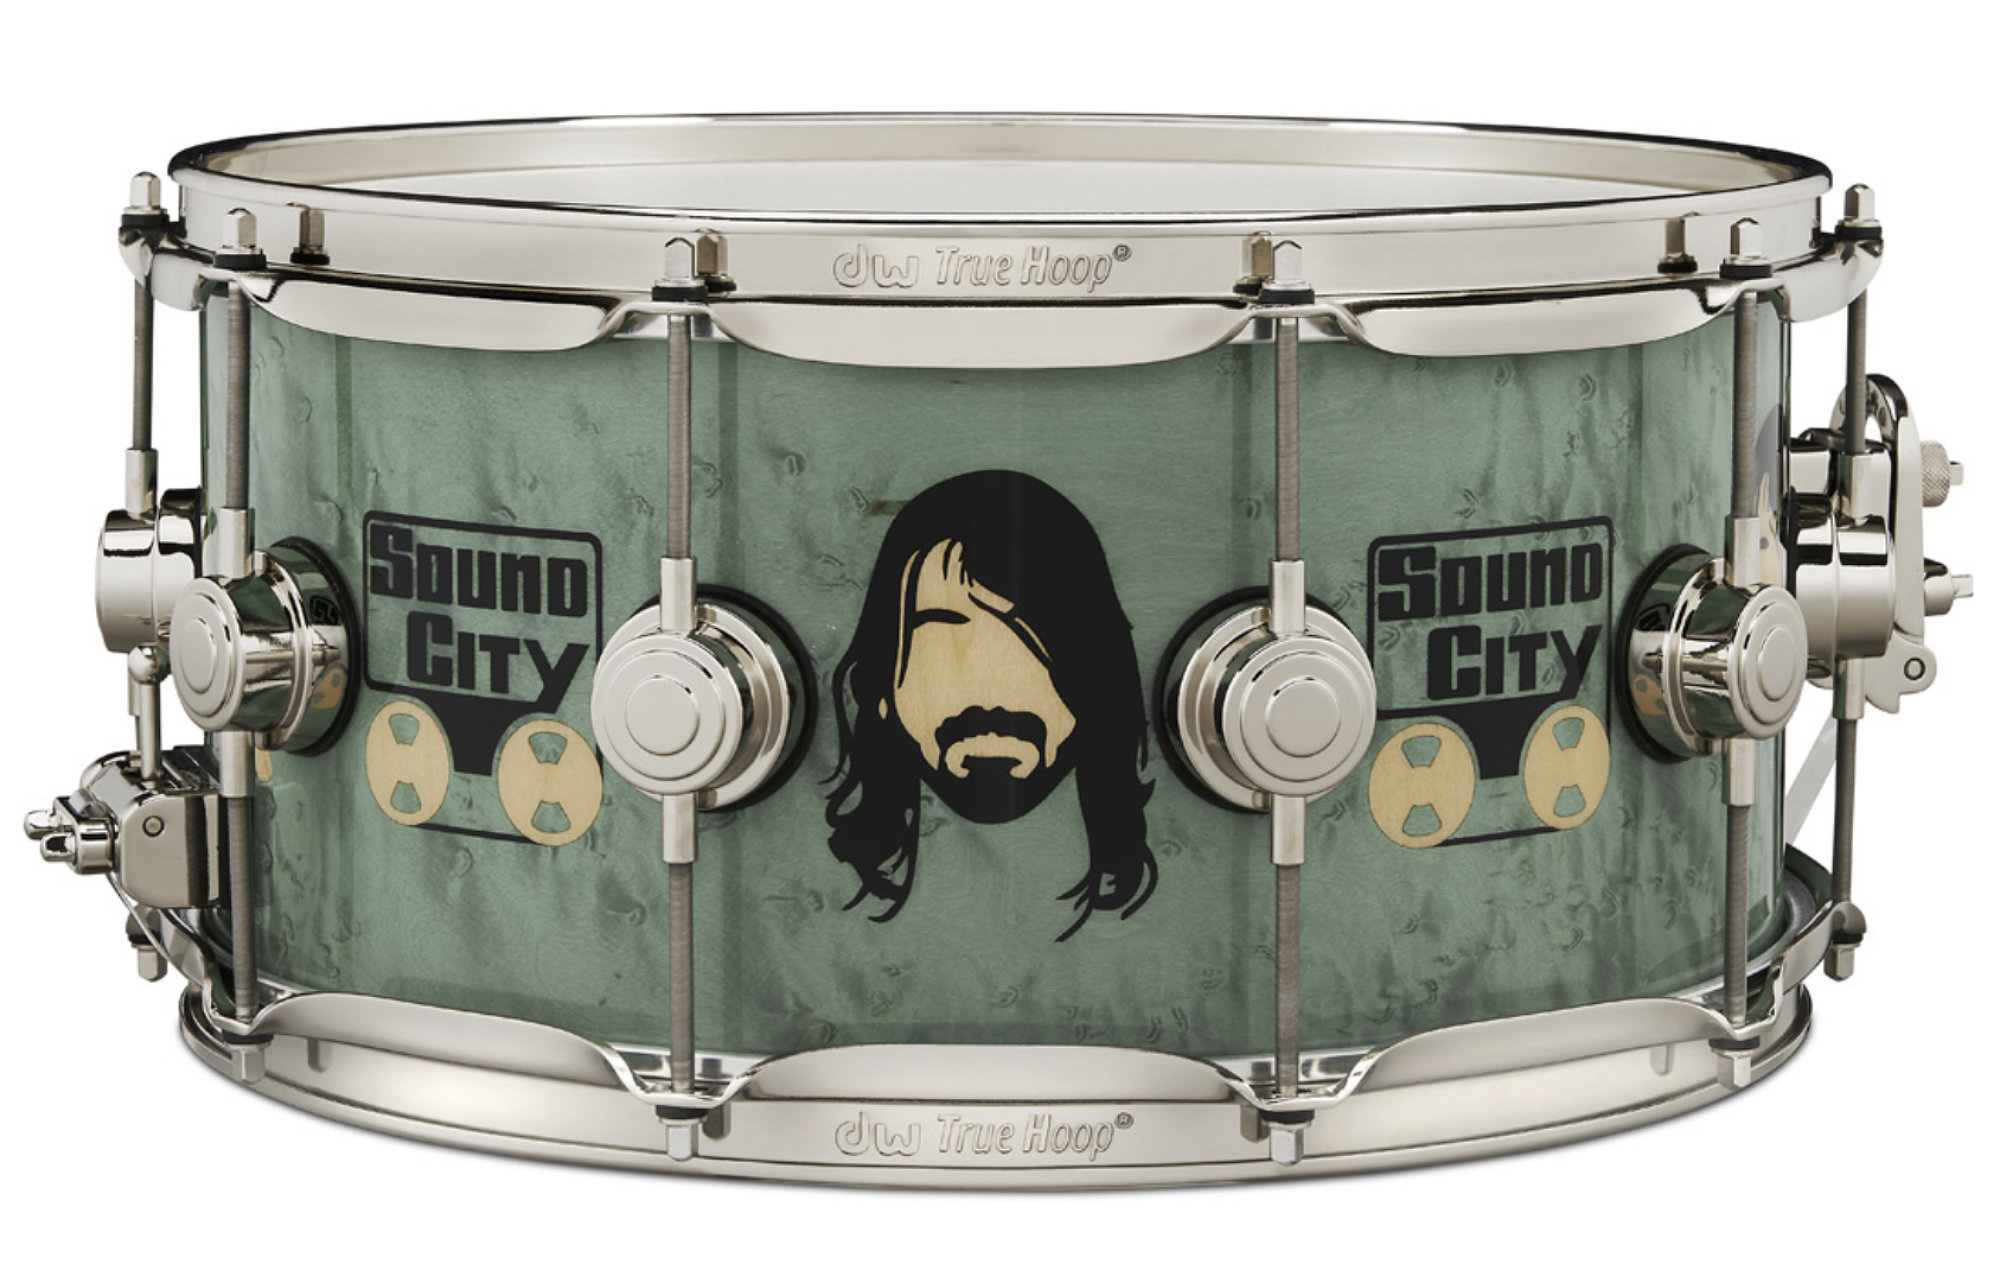 DW Drums unveil limited edition Dave Grohl ICON snare drum